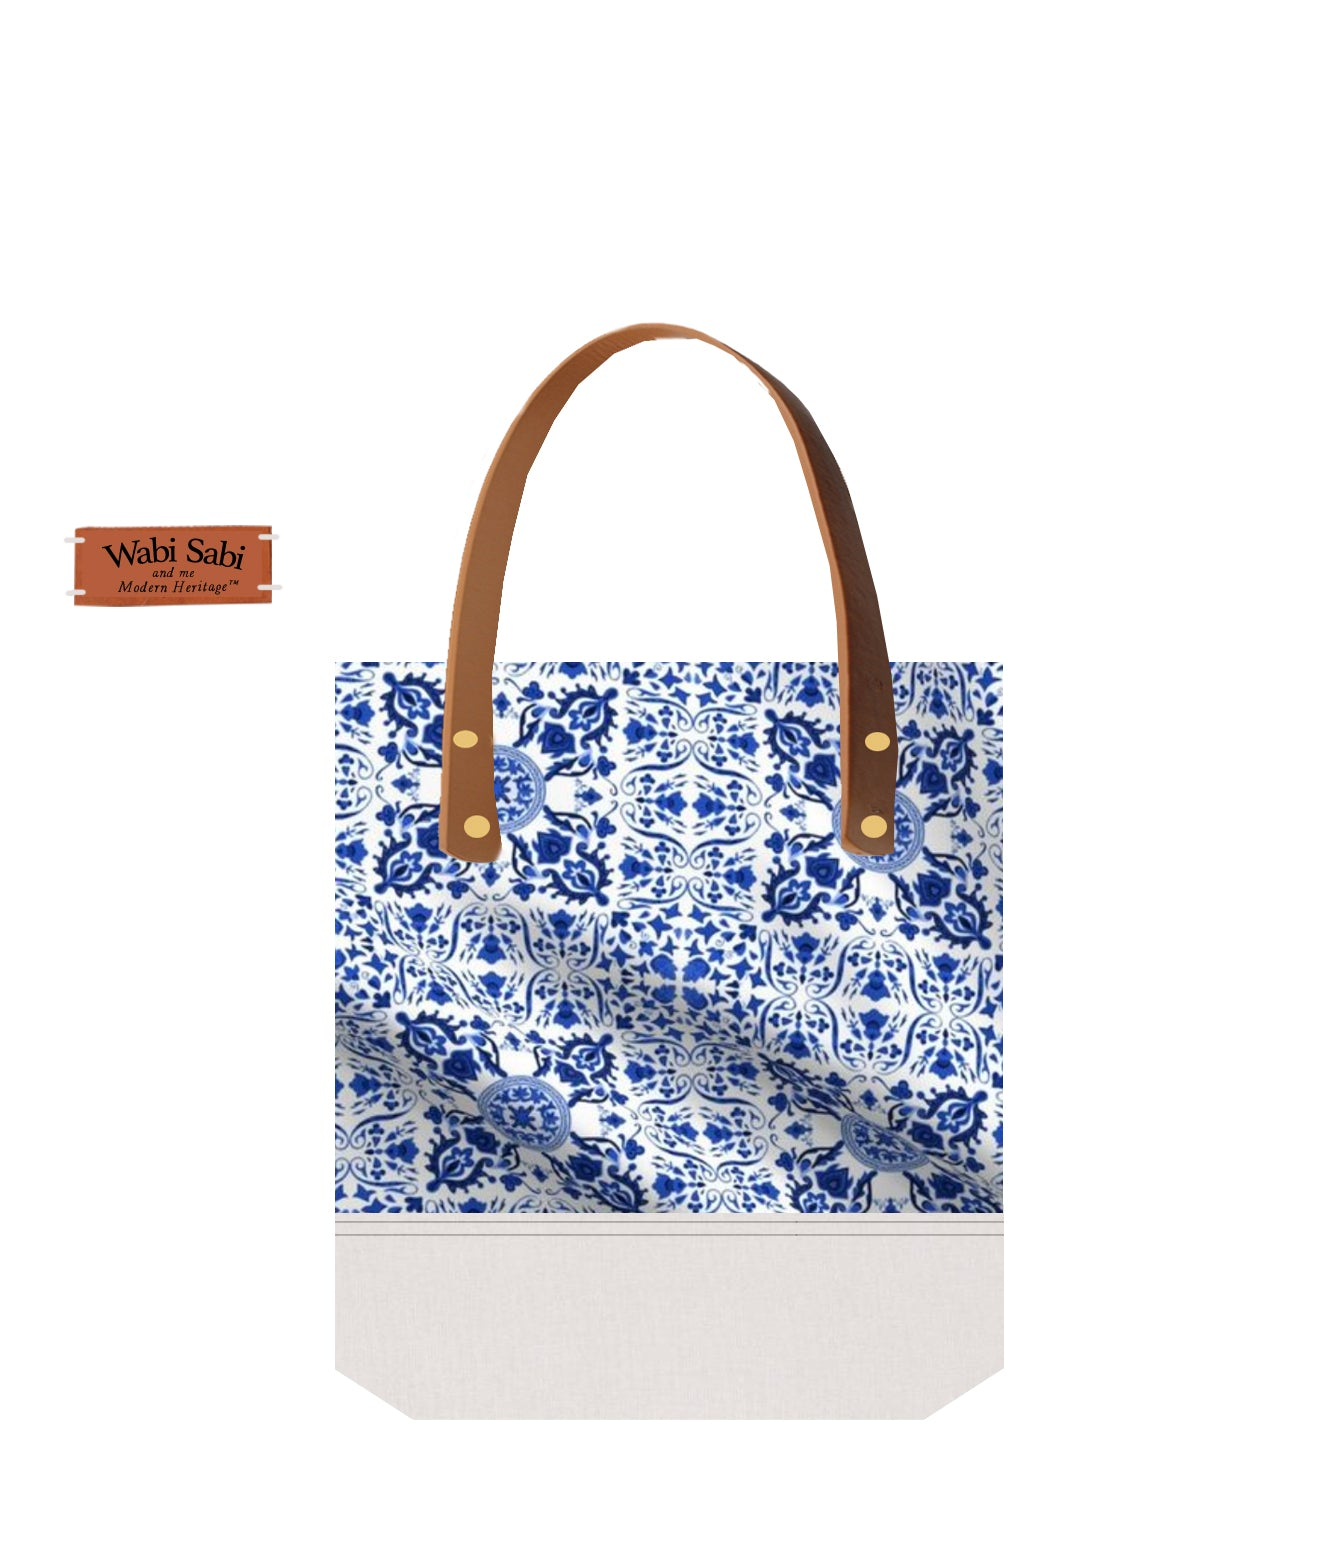 Portofino Tote Bag - Limited Run